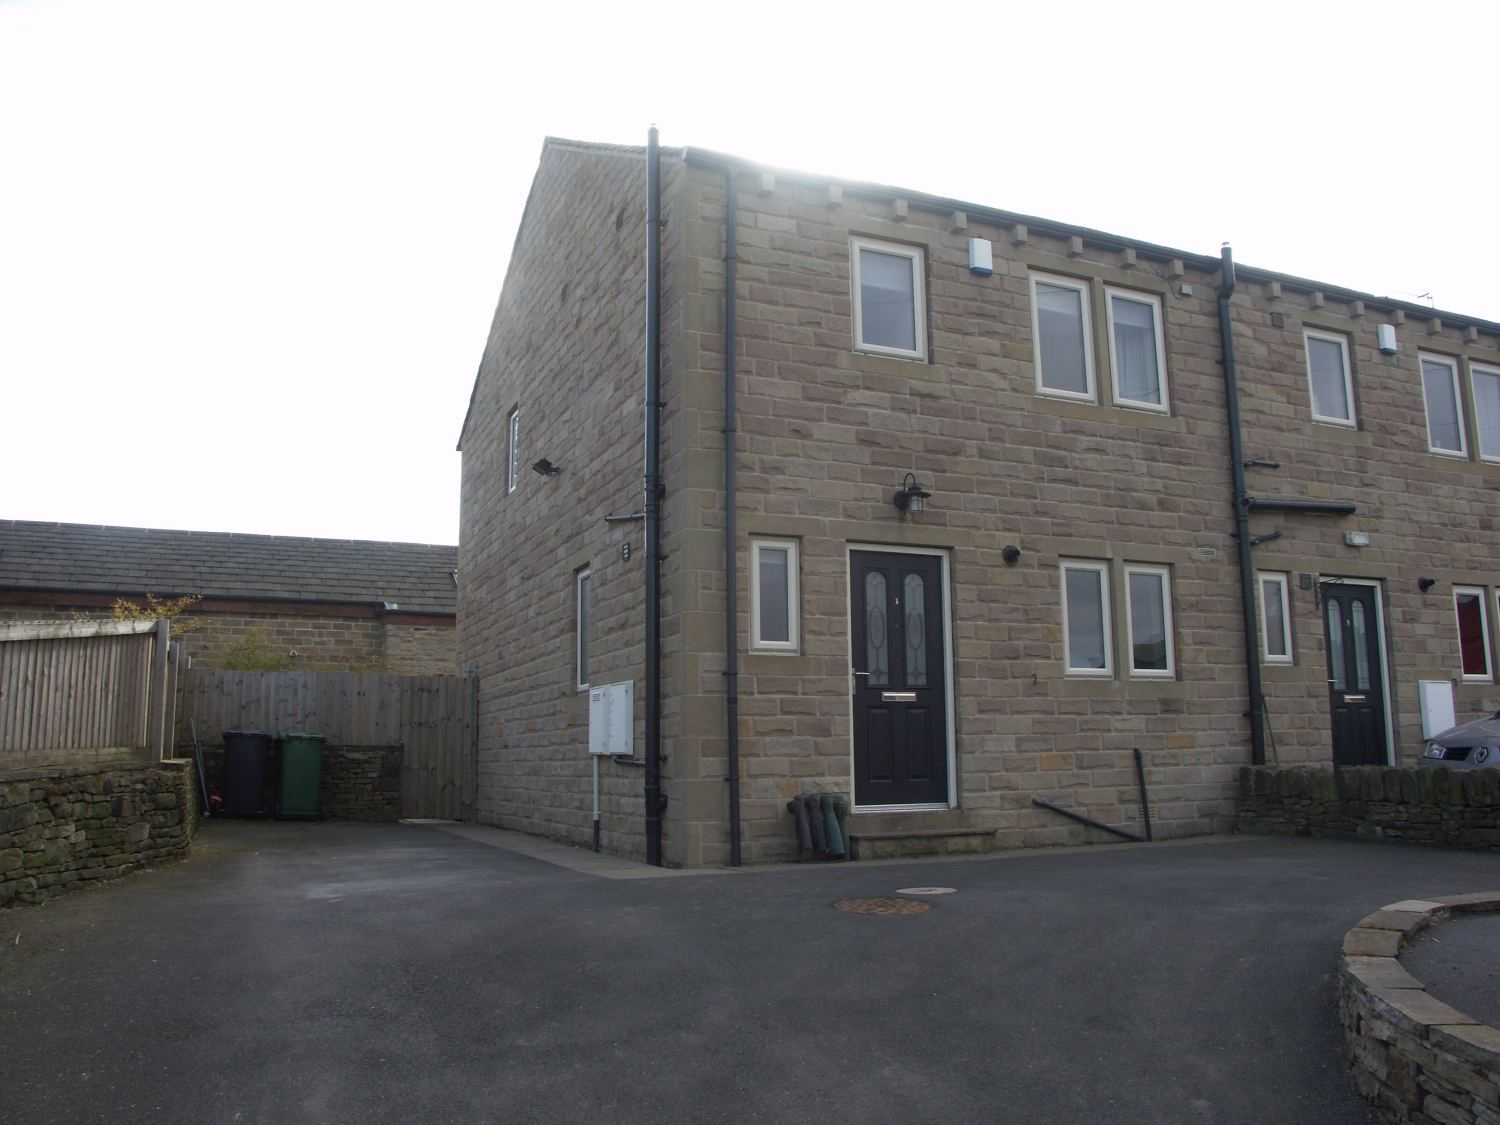 3 Botany Lane, Lepton, HD8 0NE